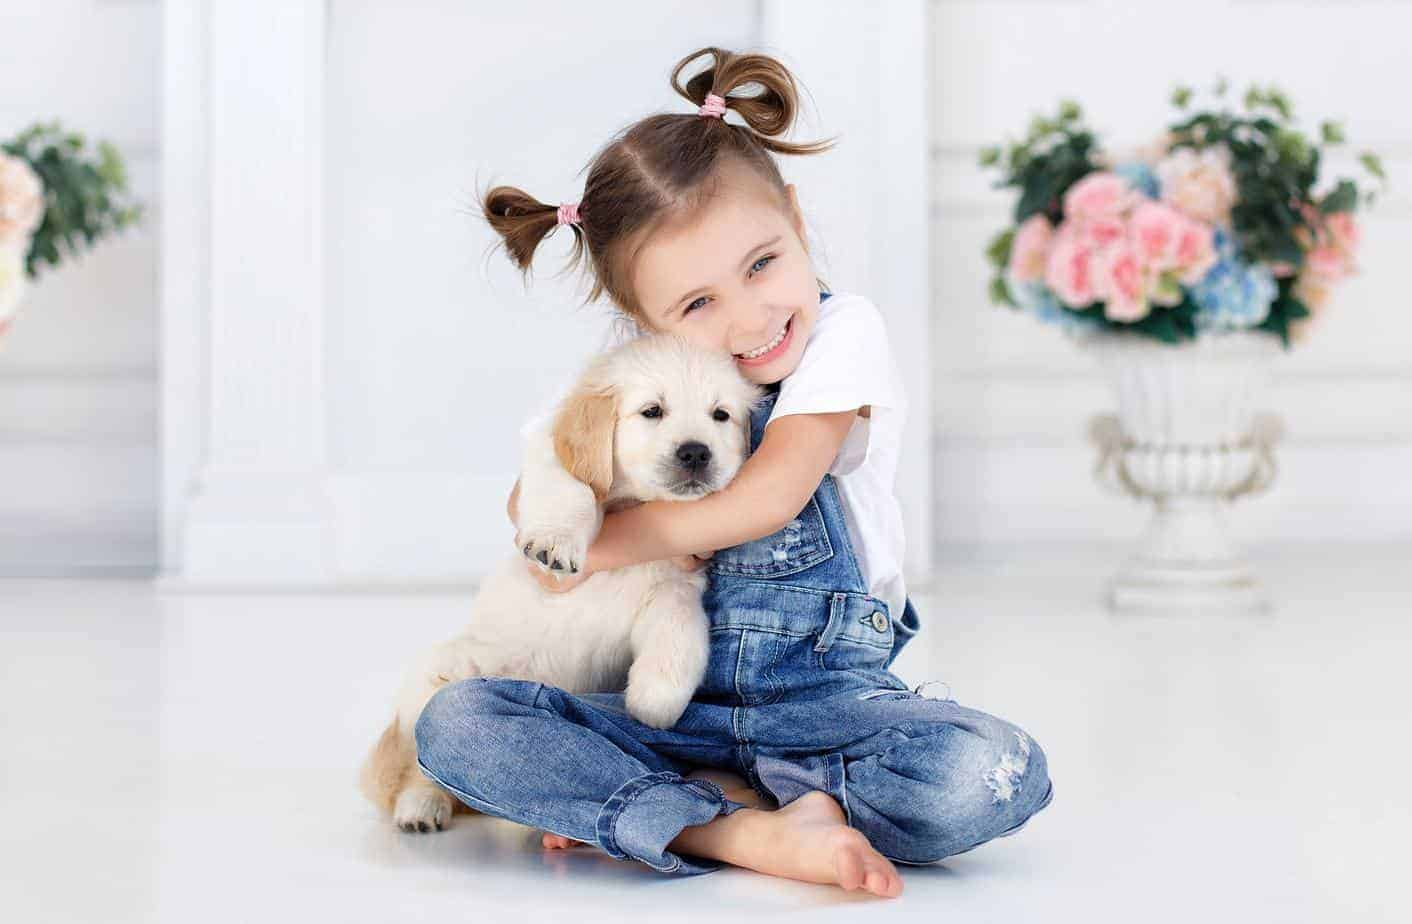 dogs provide Young girl hugs a Labrador puppy. The unconditional love of a puppy helps boost self-esteem, which is an example of how dogs provide health benefits for children.